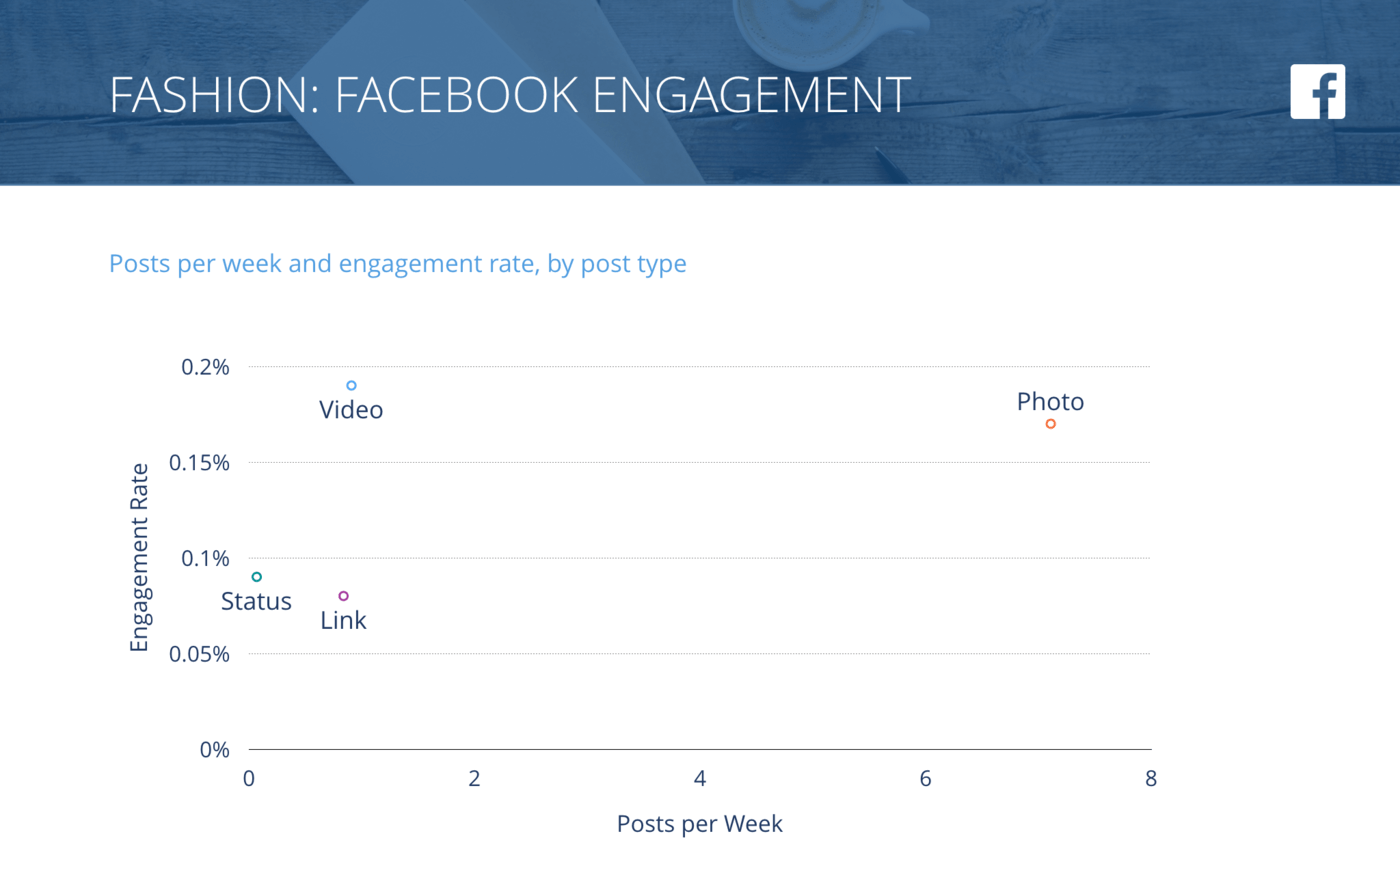 slide for Facebook Posts per Week vs. Engagement Rate per Post, Fashion Brands